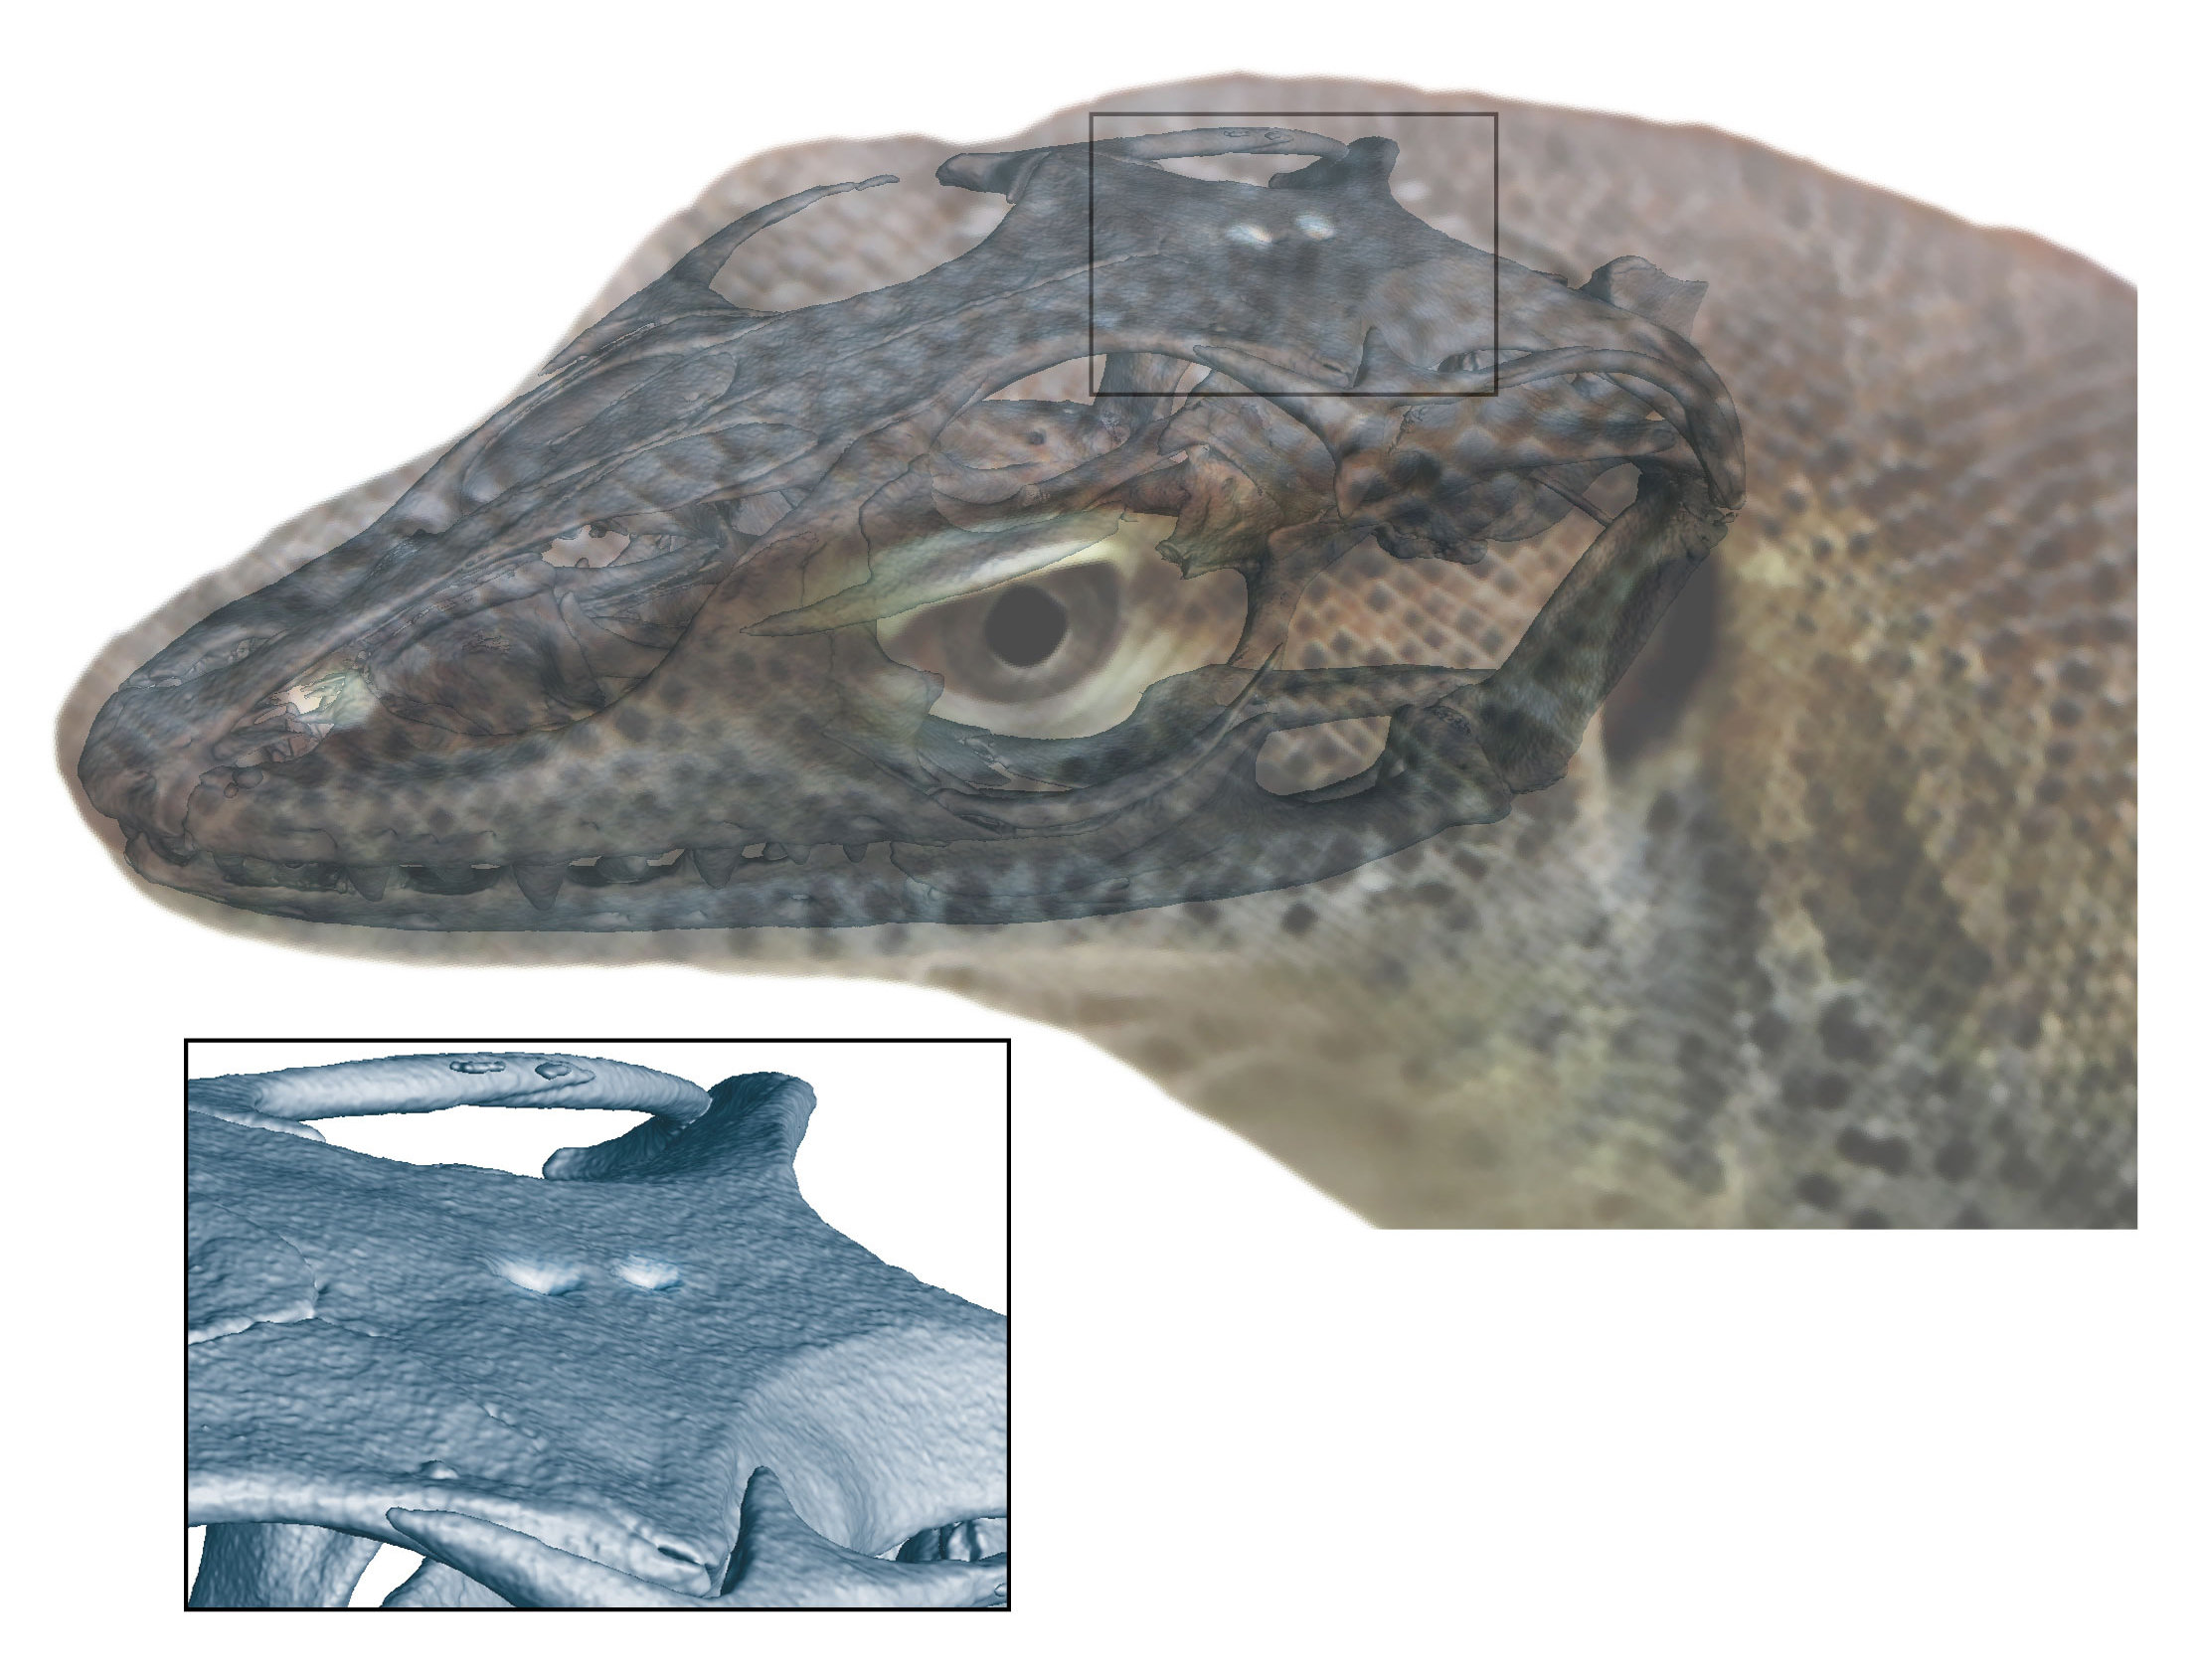 Extinct Monitor Lizard Had Four Eyes Fossil Evidence Shows